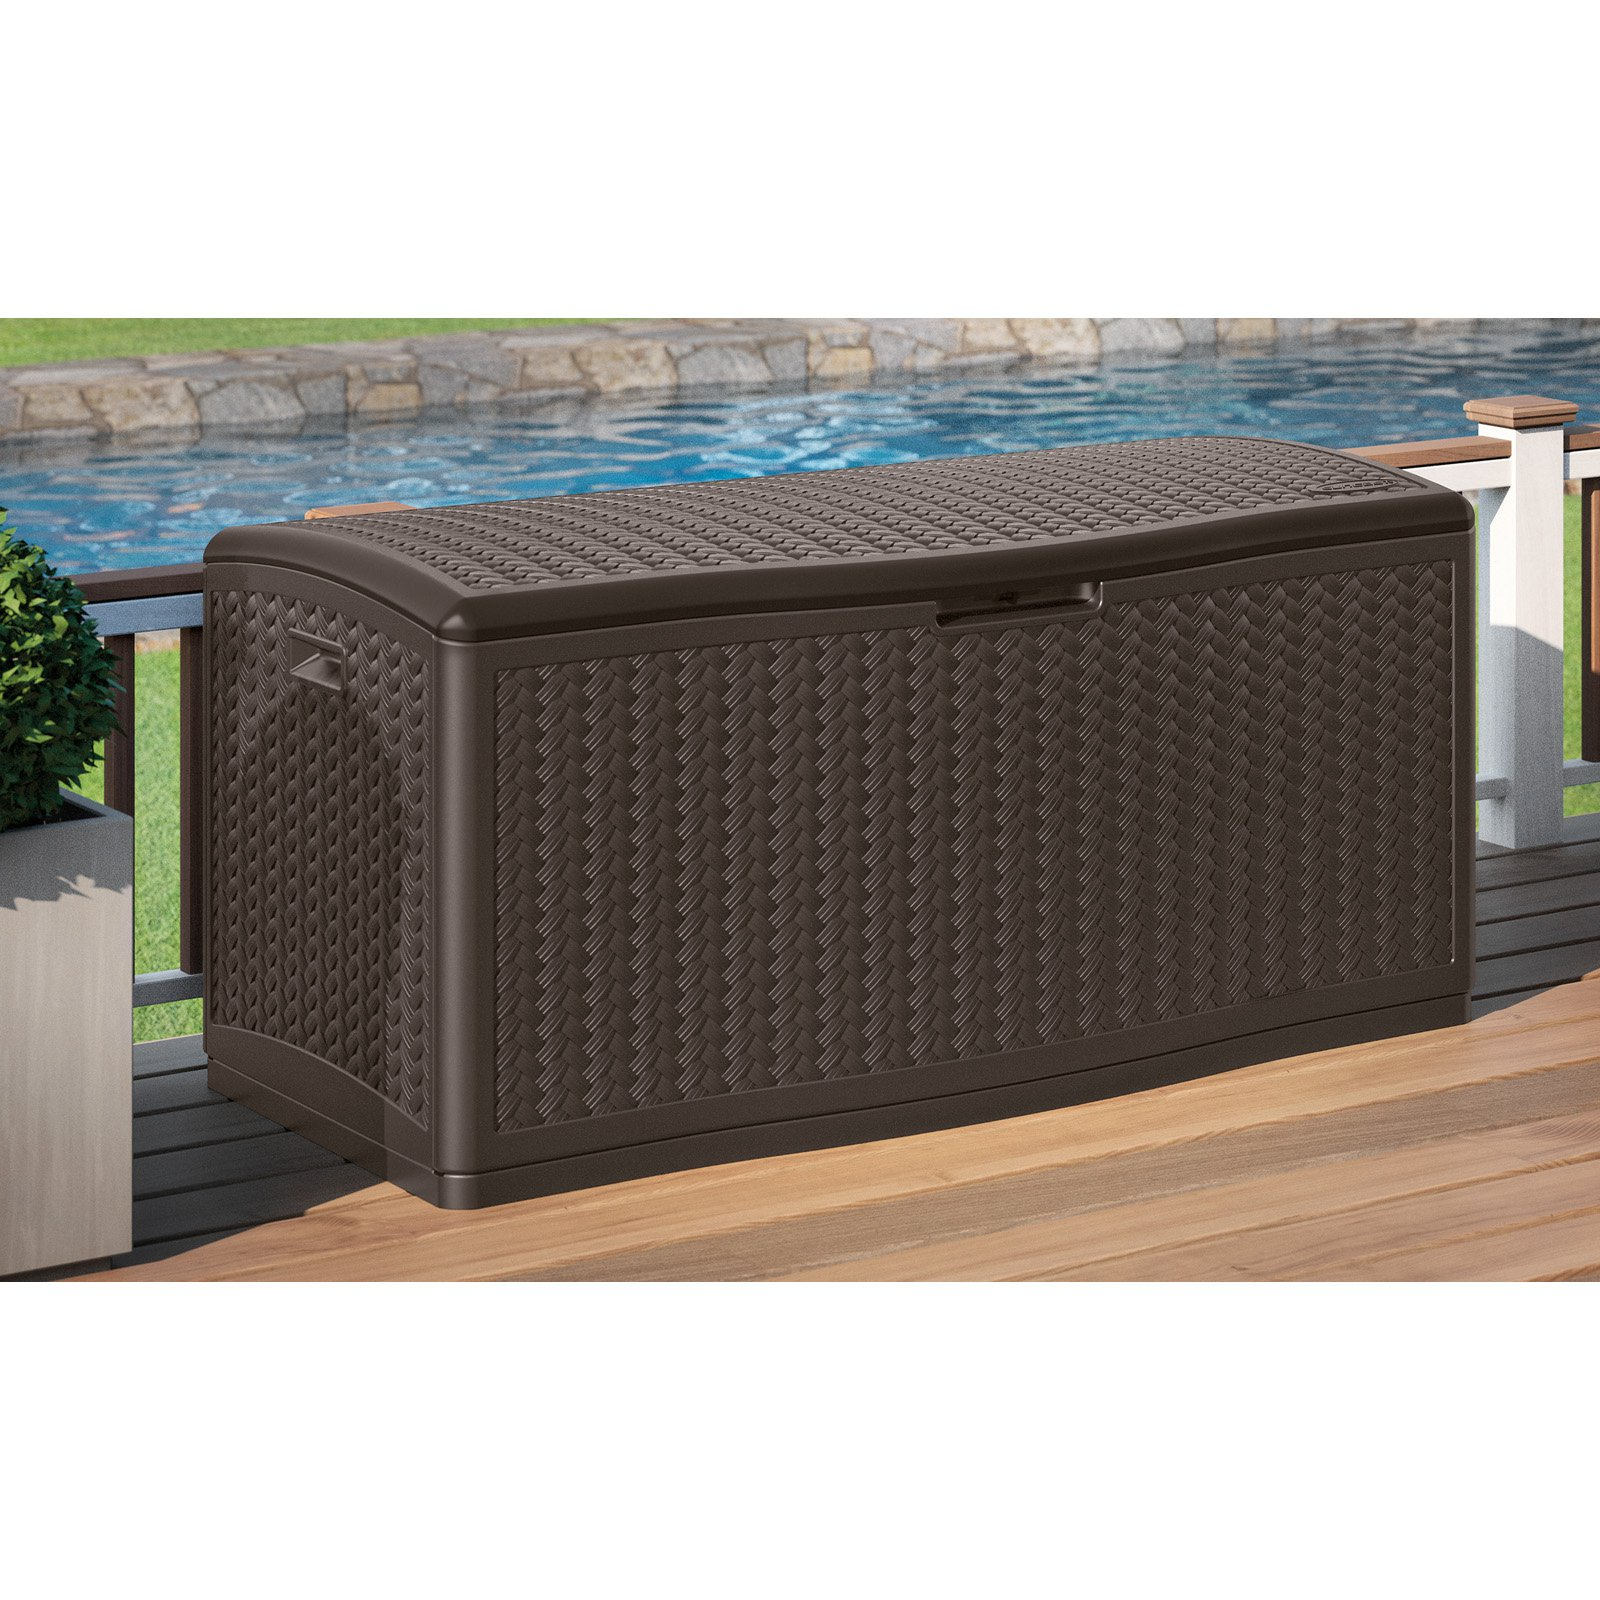 Suncast 124-Gallon Deck Box by Suncast Corp